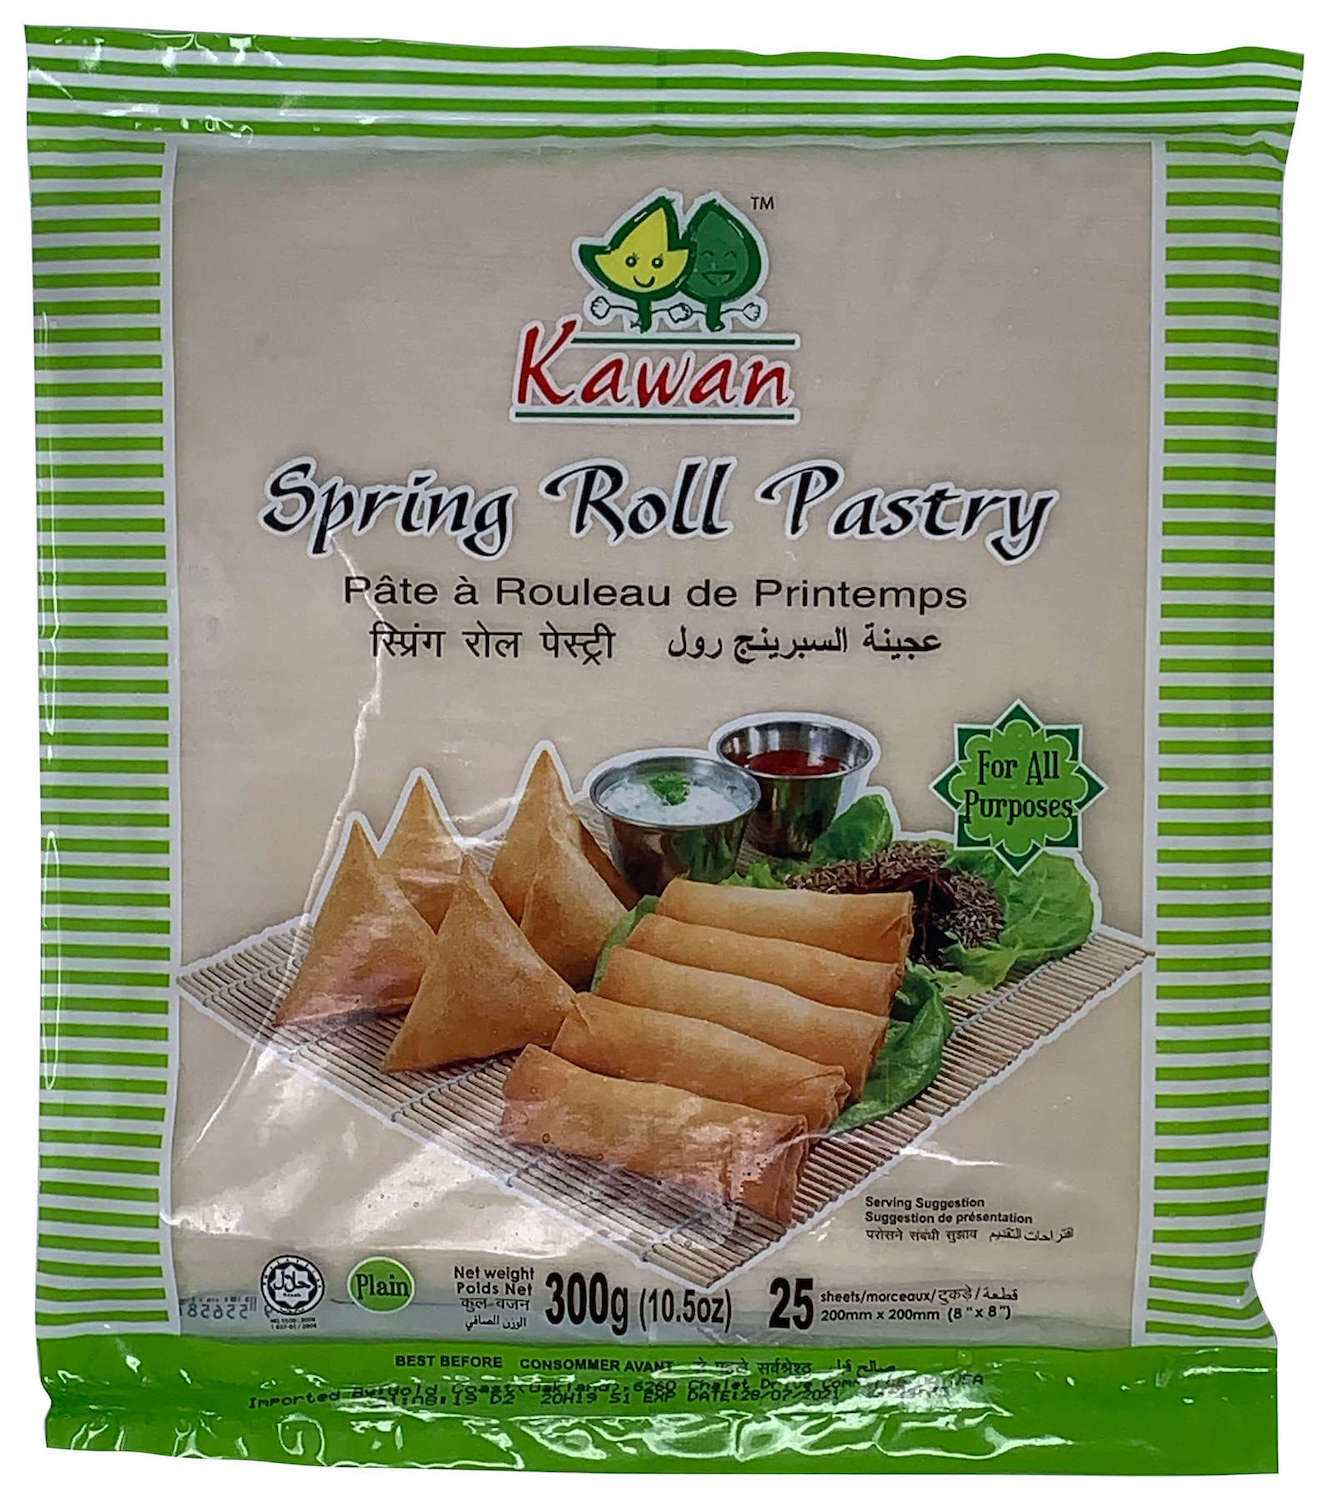 Kawan Frozen Spring Roll Pastry 25 Sheets